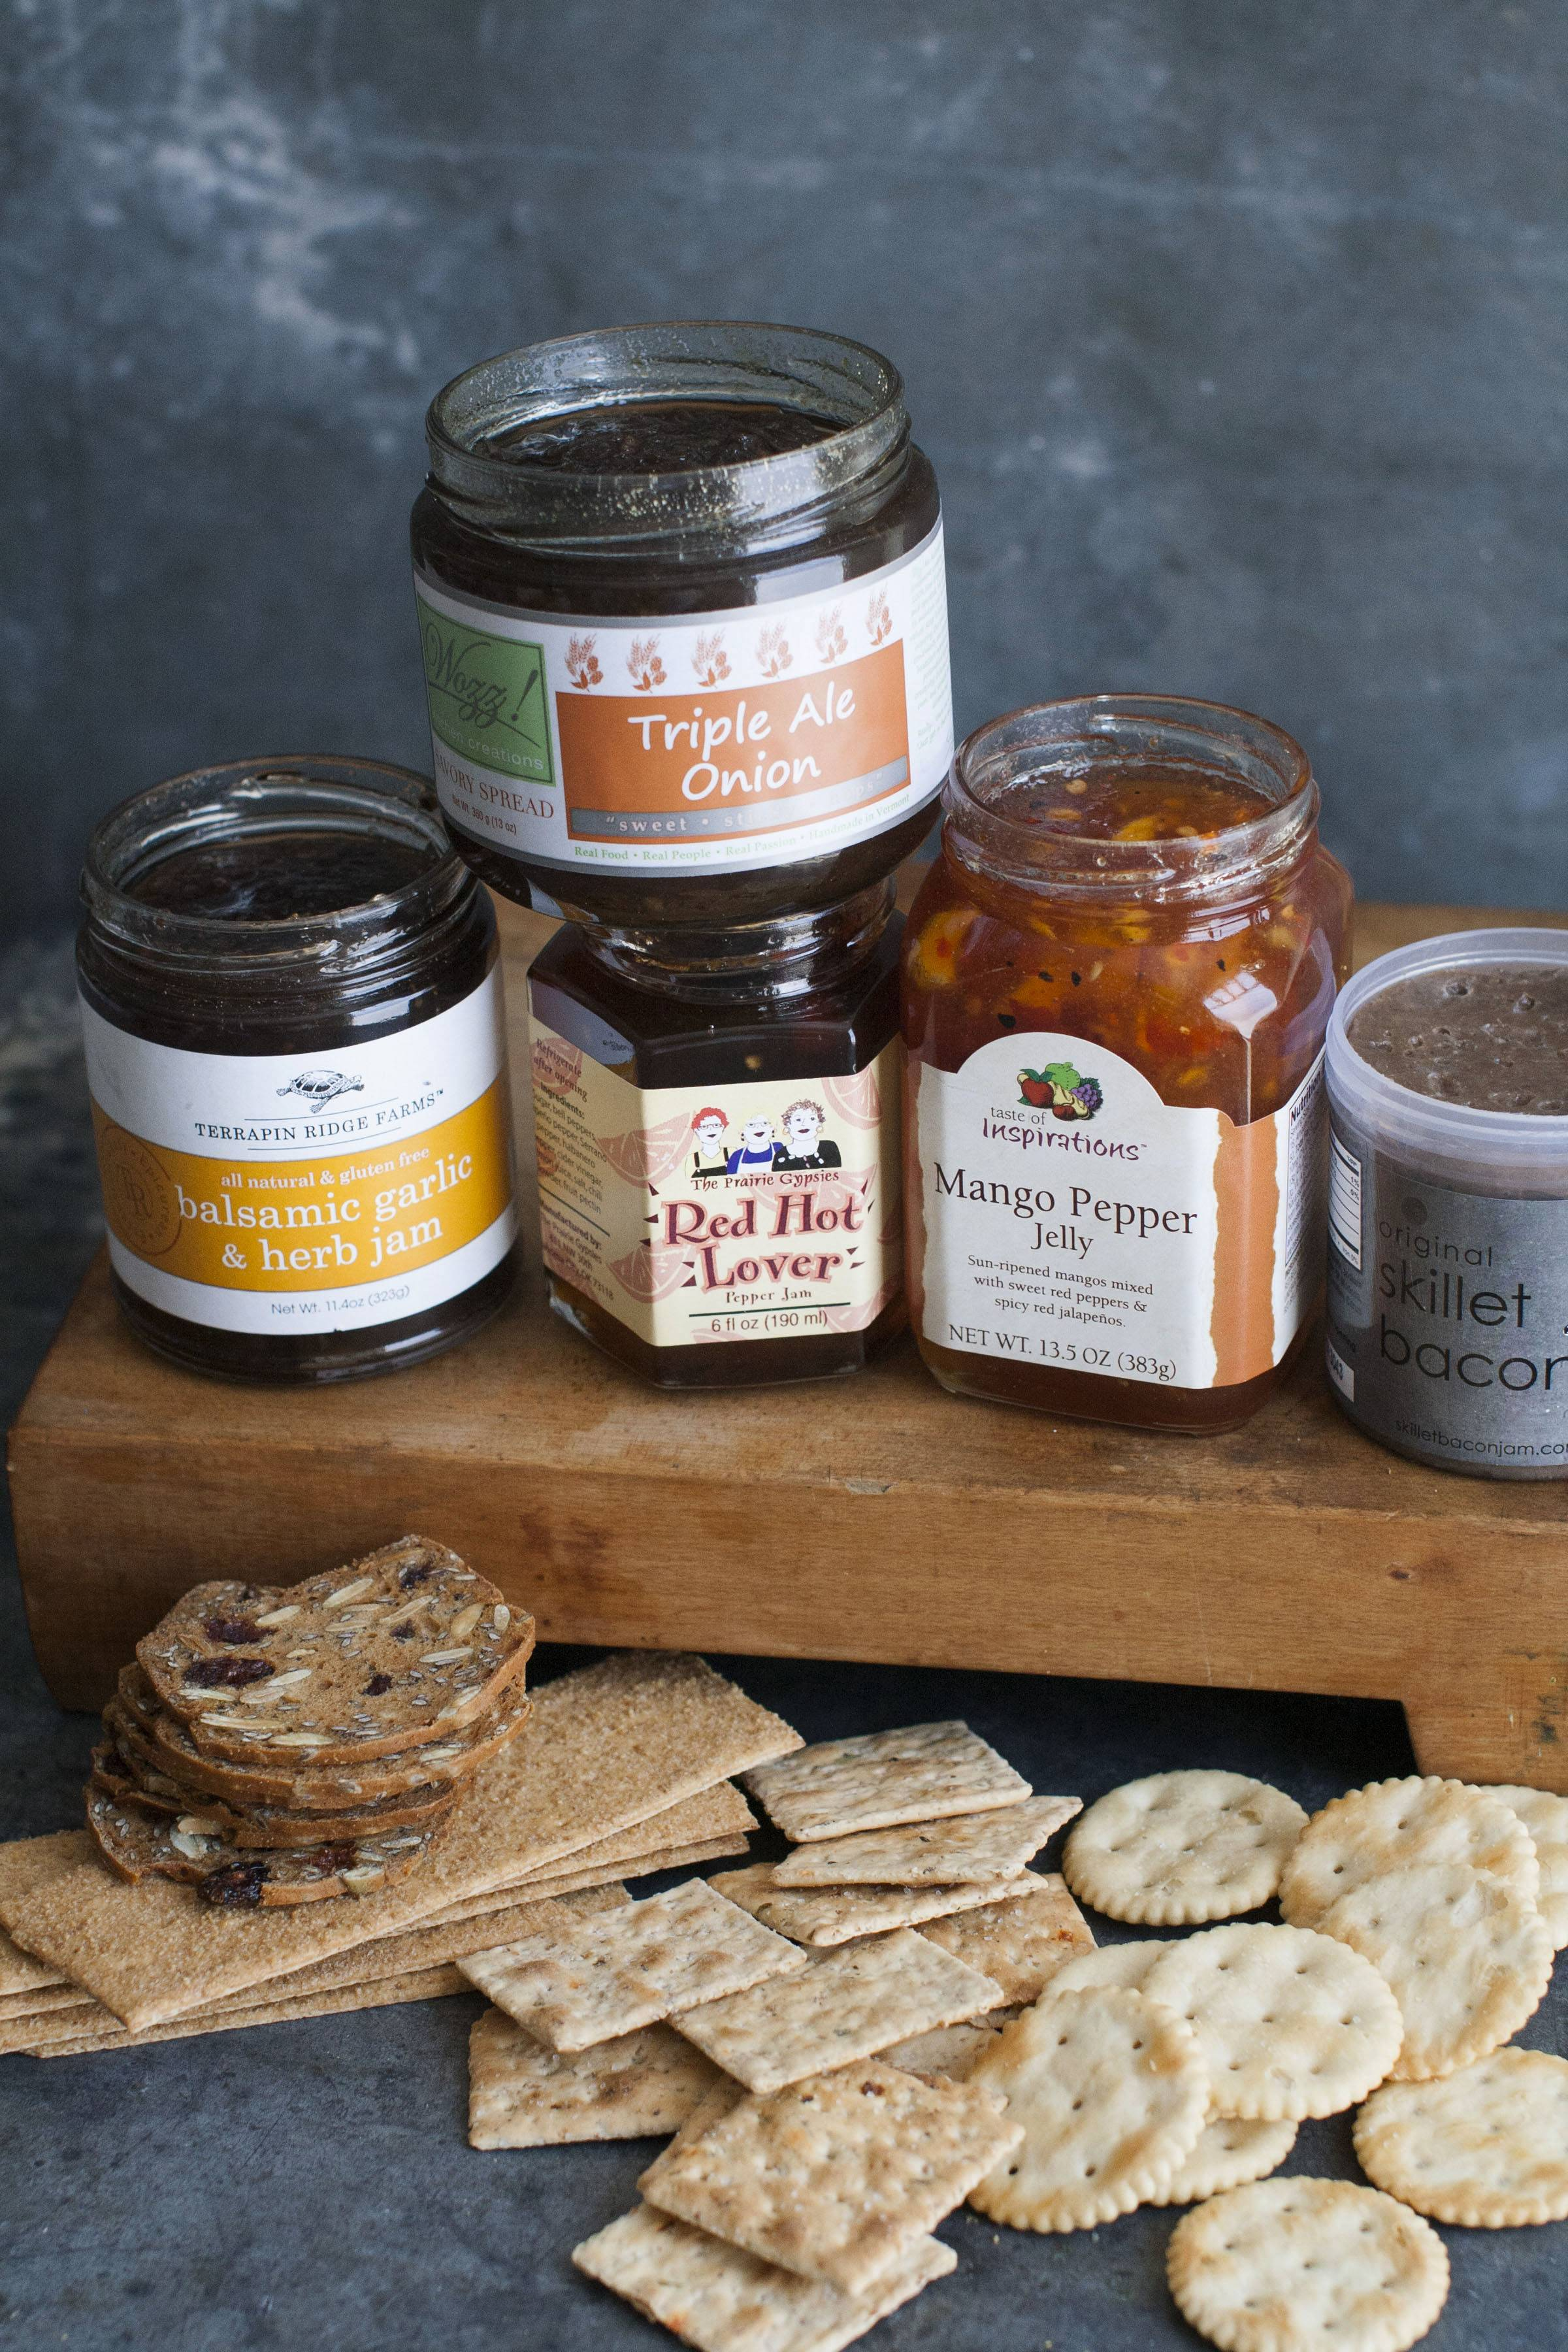 Savory jams, like Terrapin Ridge Farms balsamic garlic and herb jam, from left, Wozz Kitchen Creations triple ale onion jam, The Prairie Gypsies red hot lover jam, Taste of Inspirations mango pepper jelly, and Skillet Bacon Spread original bacon spread go well with cheese plates.